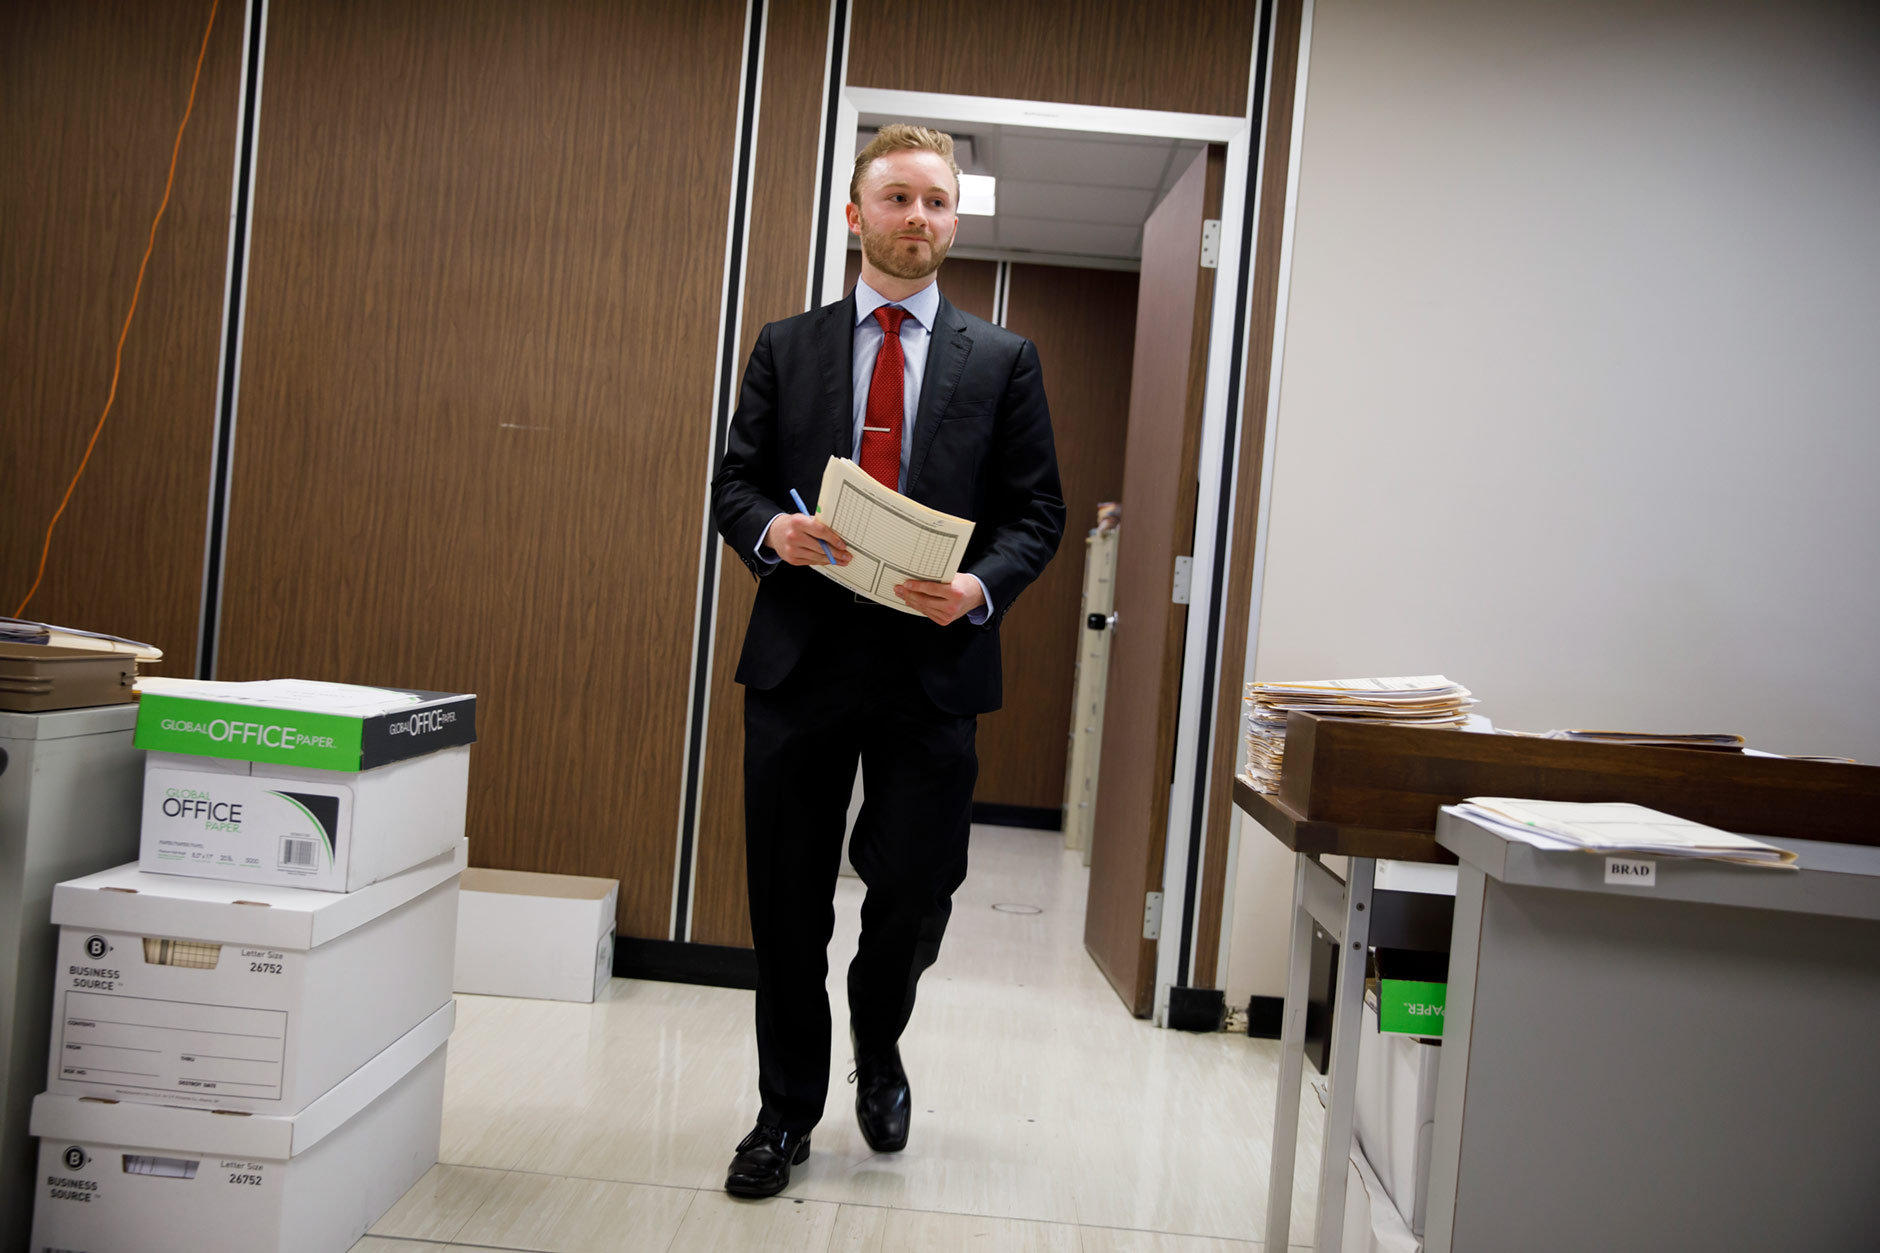 Roger Howard, a graduating senior at IU Southeast, works in the prosecutor's office at the Clark County Courthouse in Jeffersonville on Tuesday, April 3, 2018. (James Brosher/IU Communications)